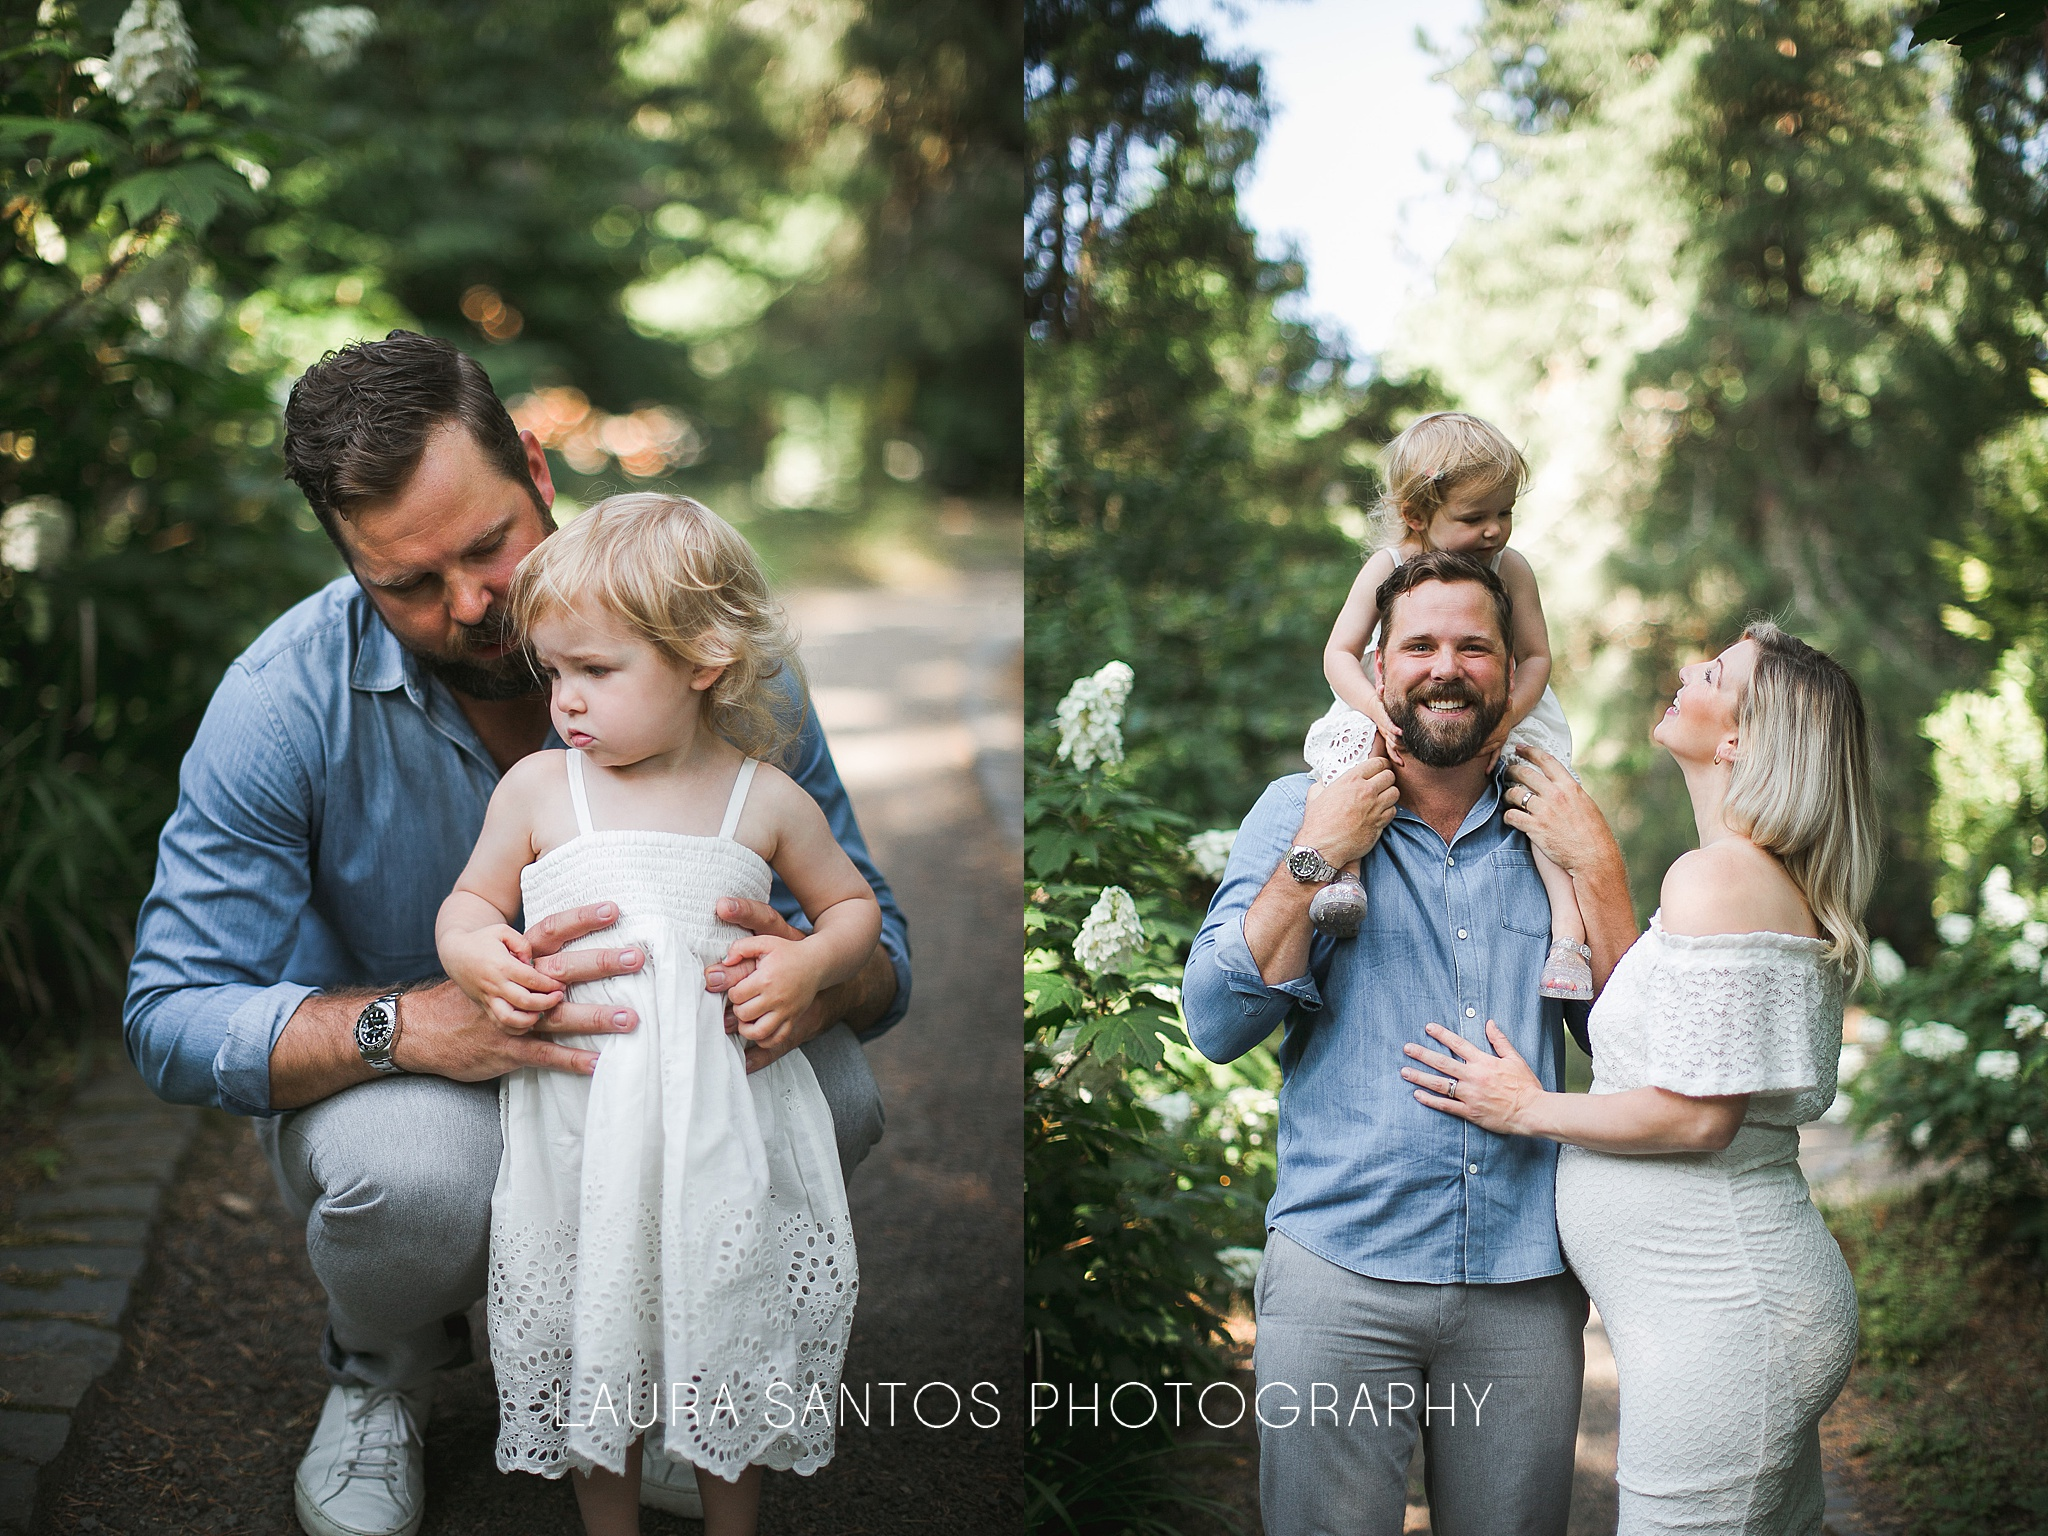 Laura Santos Photography Portland Oregon Family Photographer_1067.jpg